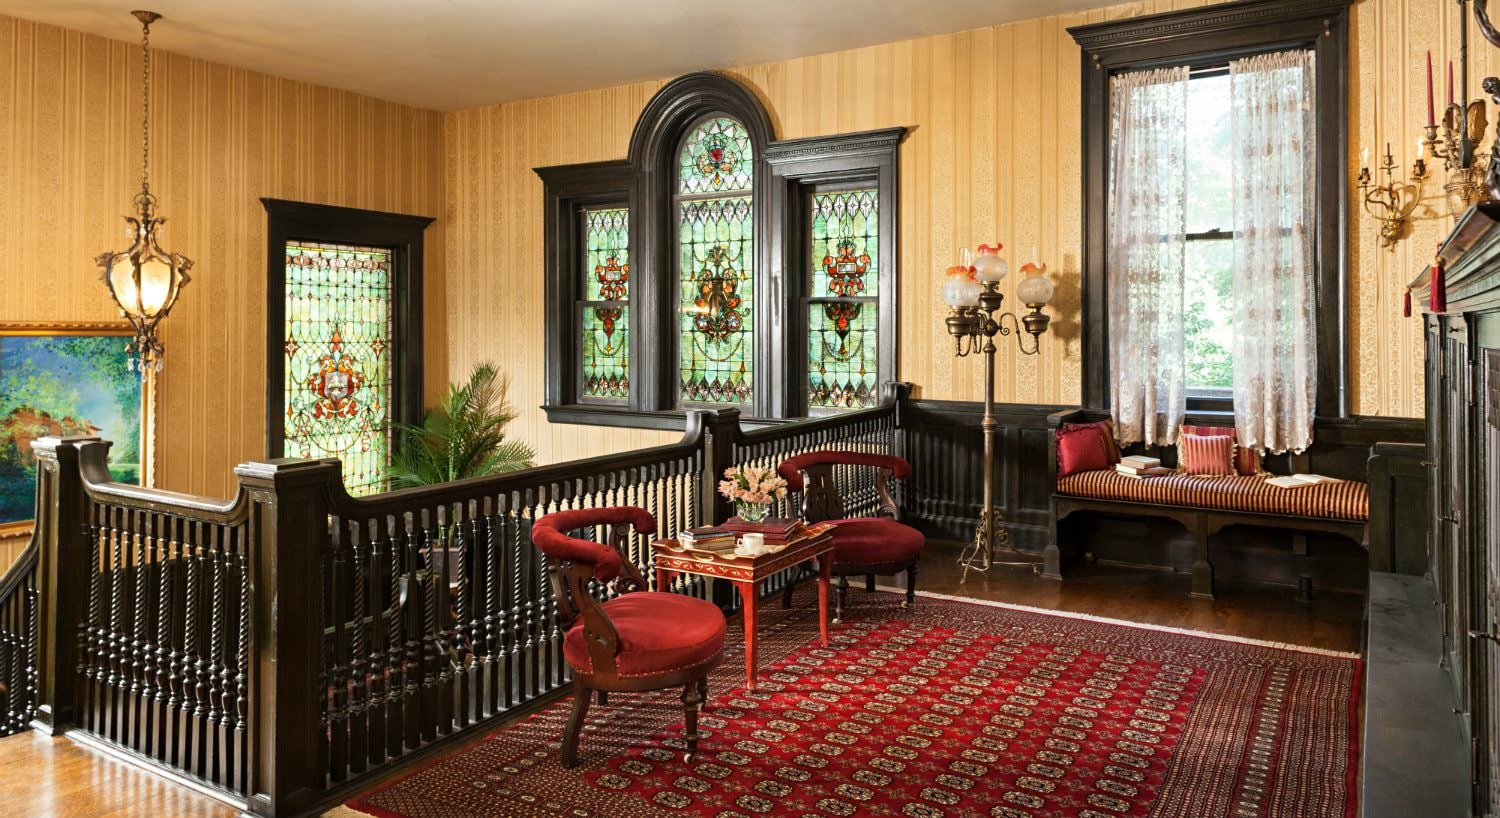 Upstairs balcony with dark wood trim, stained glass windows, red area rug with two velvet and wood chairs